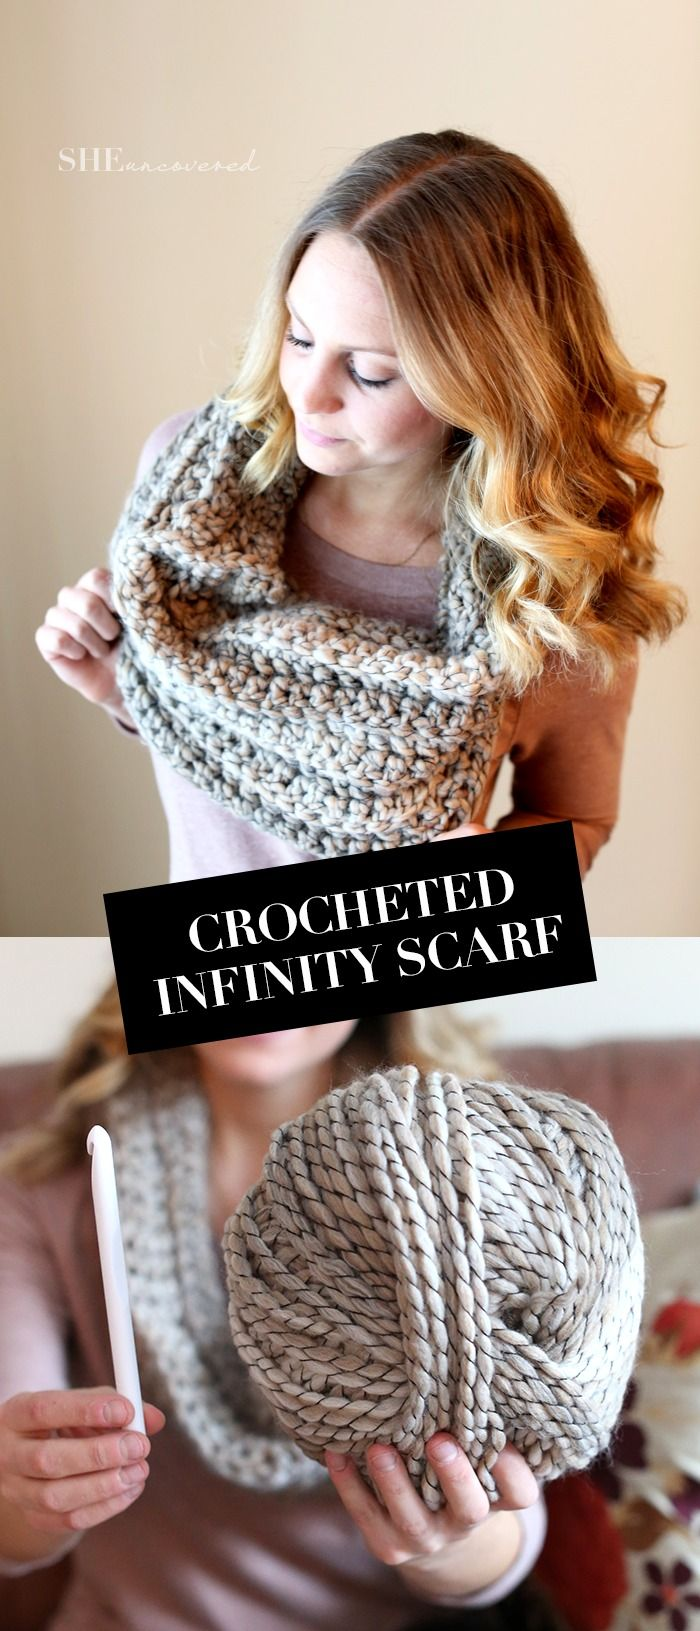 Use American Double Crochet Stitches To Make Your Own